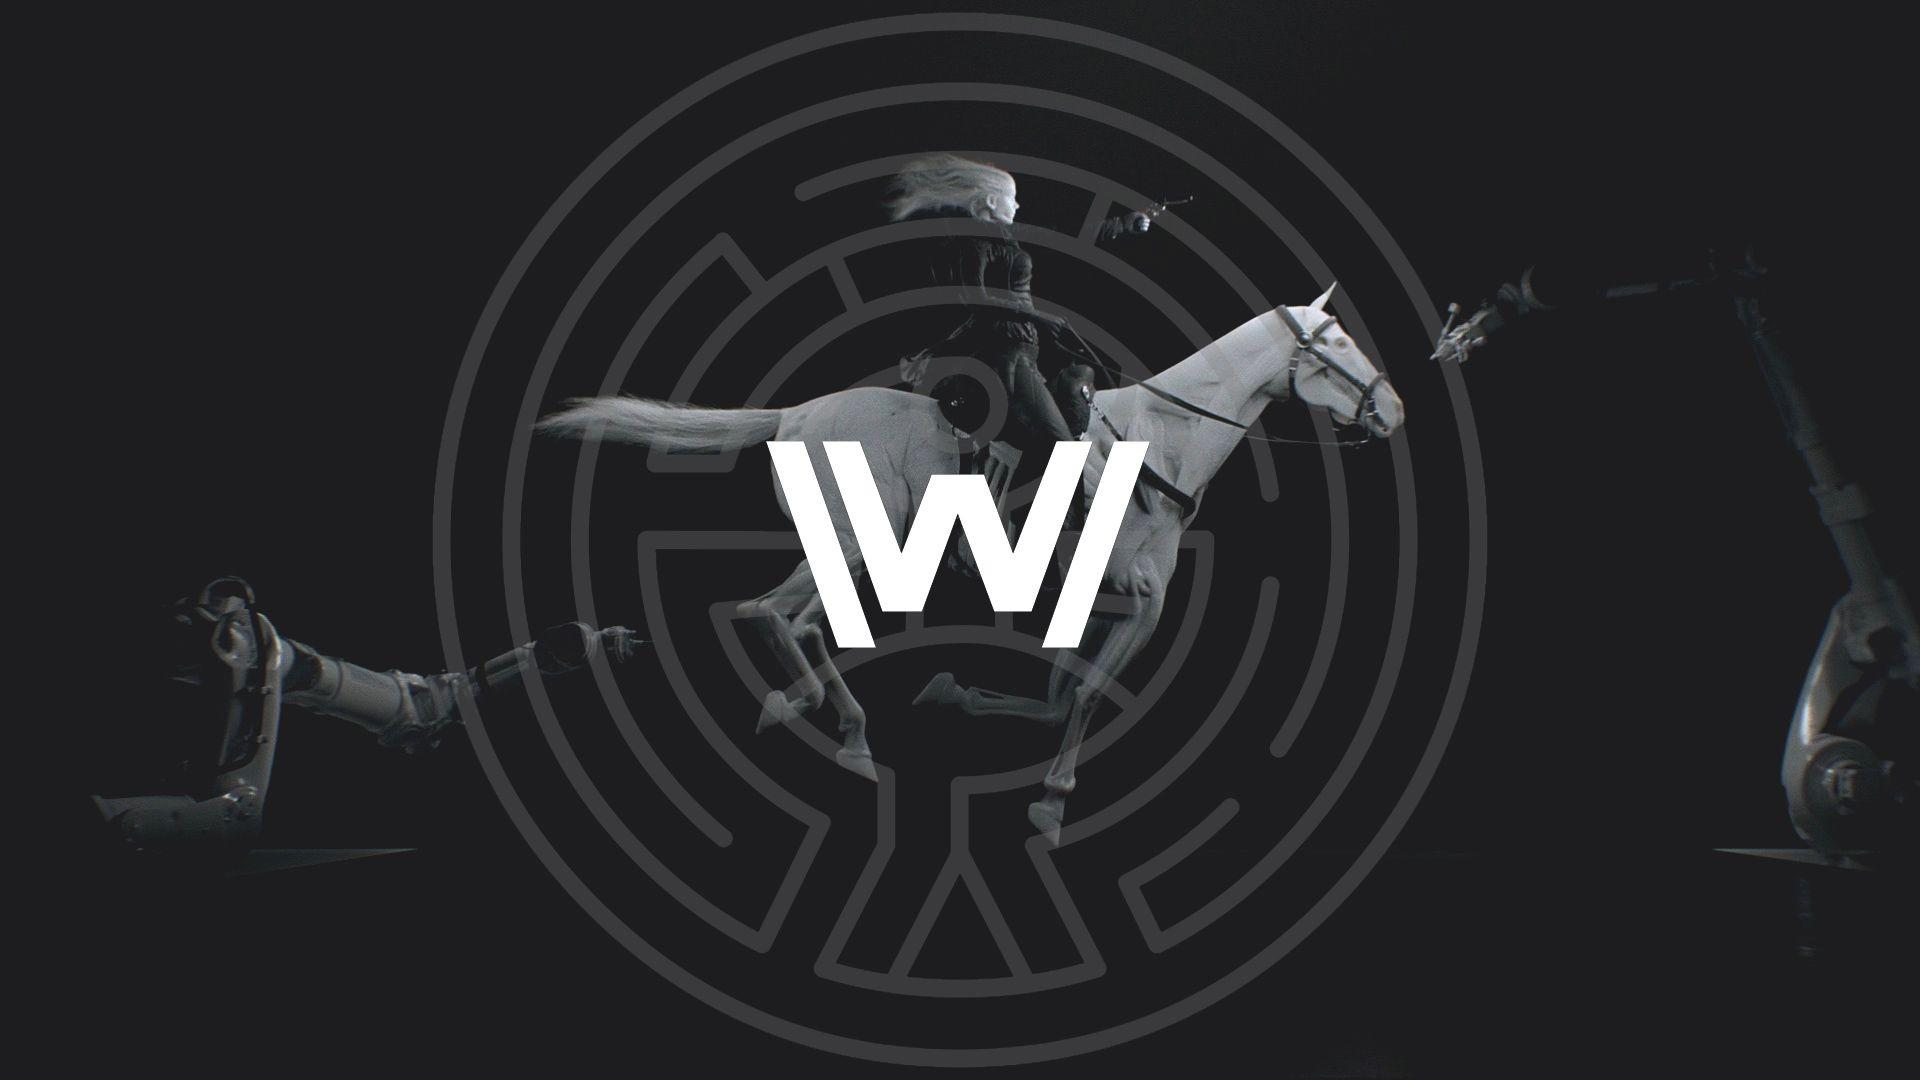 Made a simple Westworld wallpapers [Desktop 1920x1080] : westworld